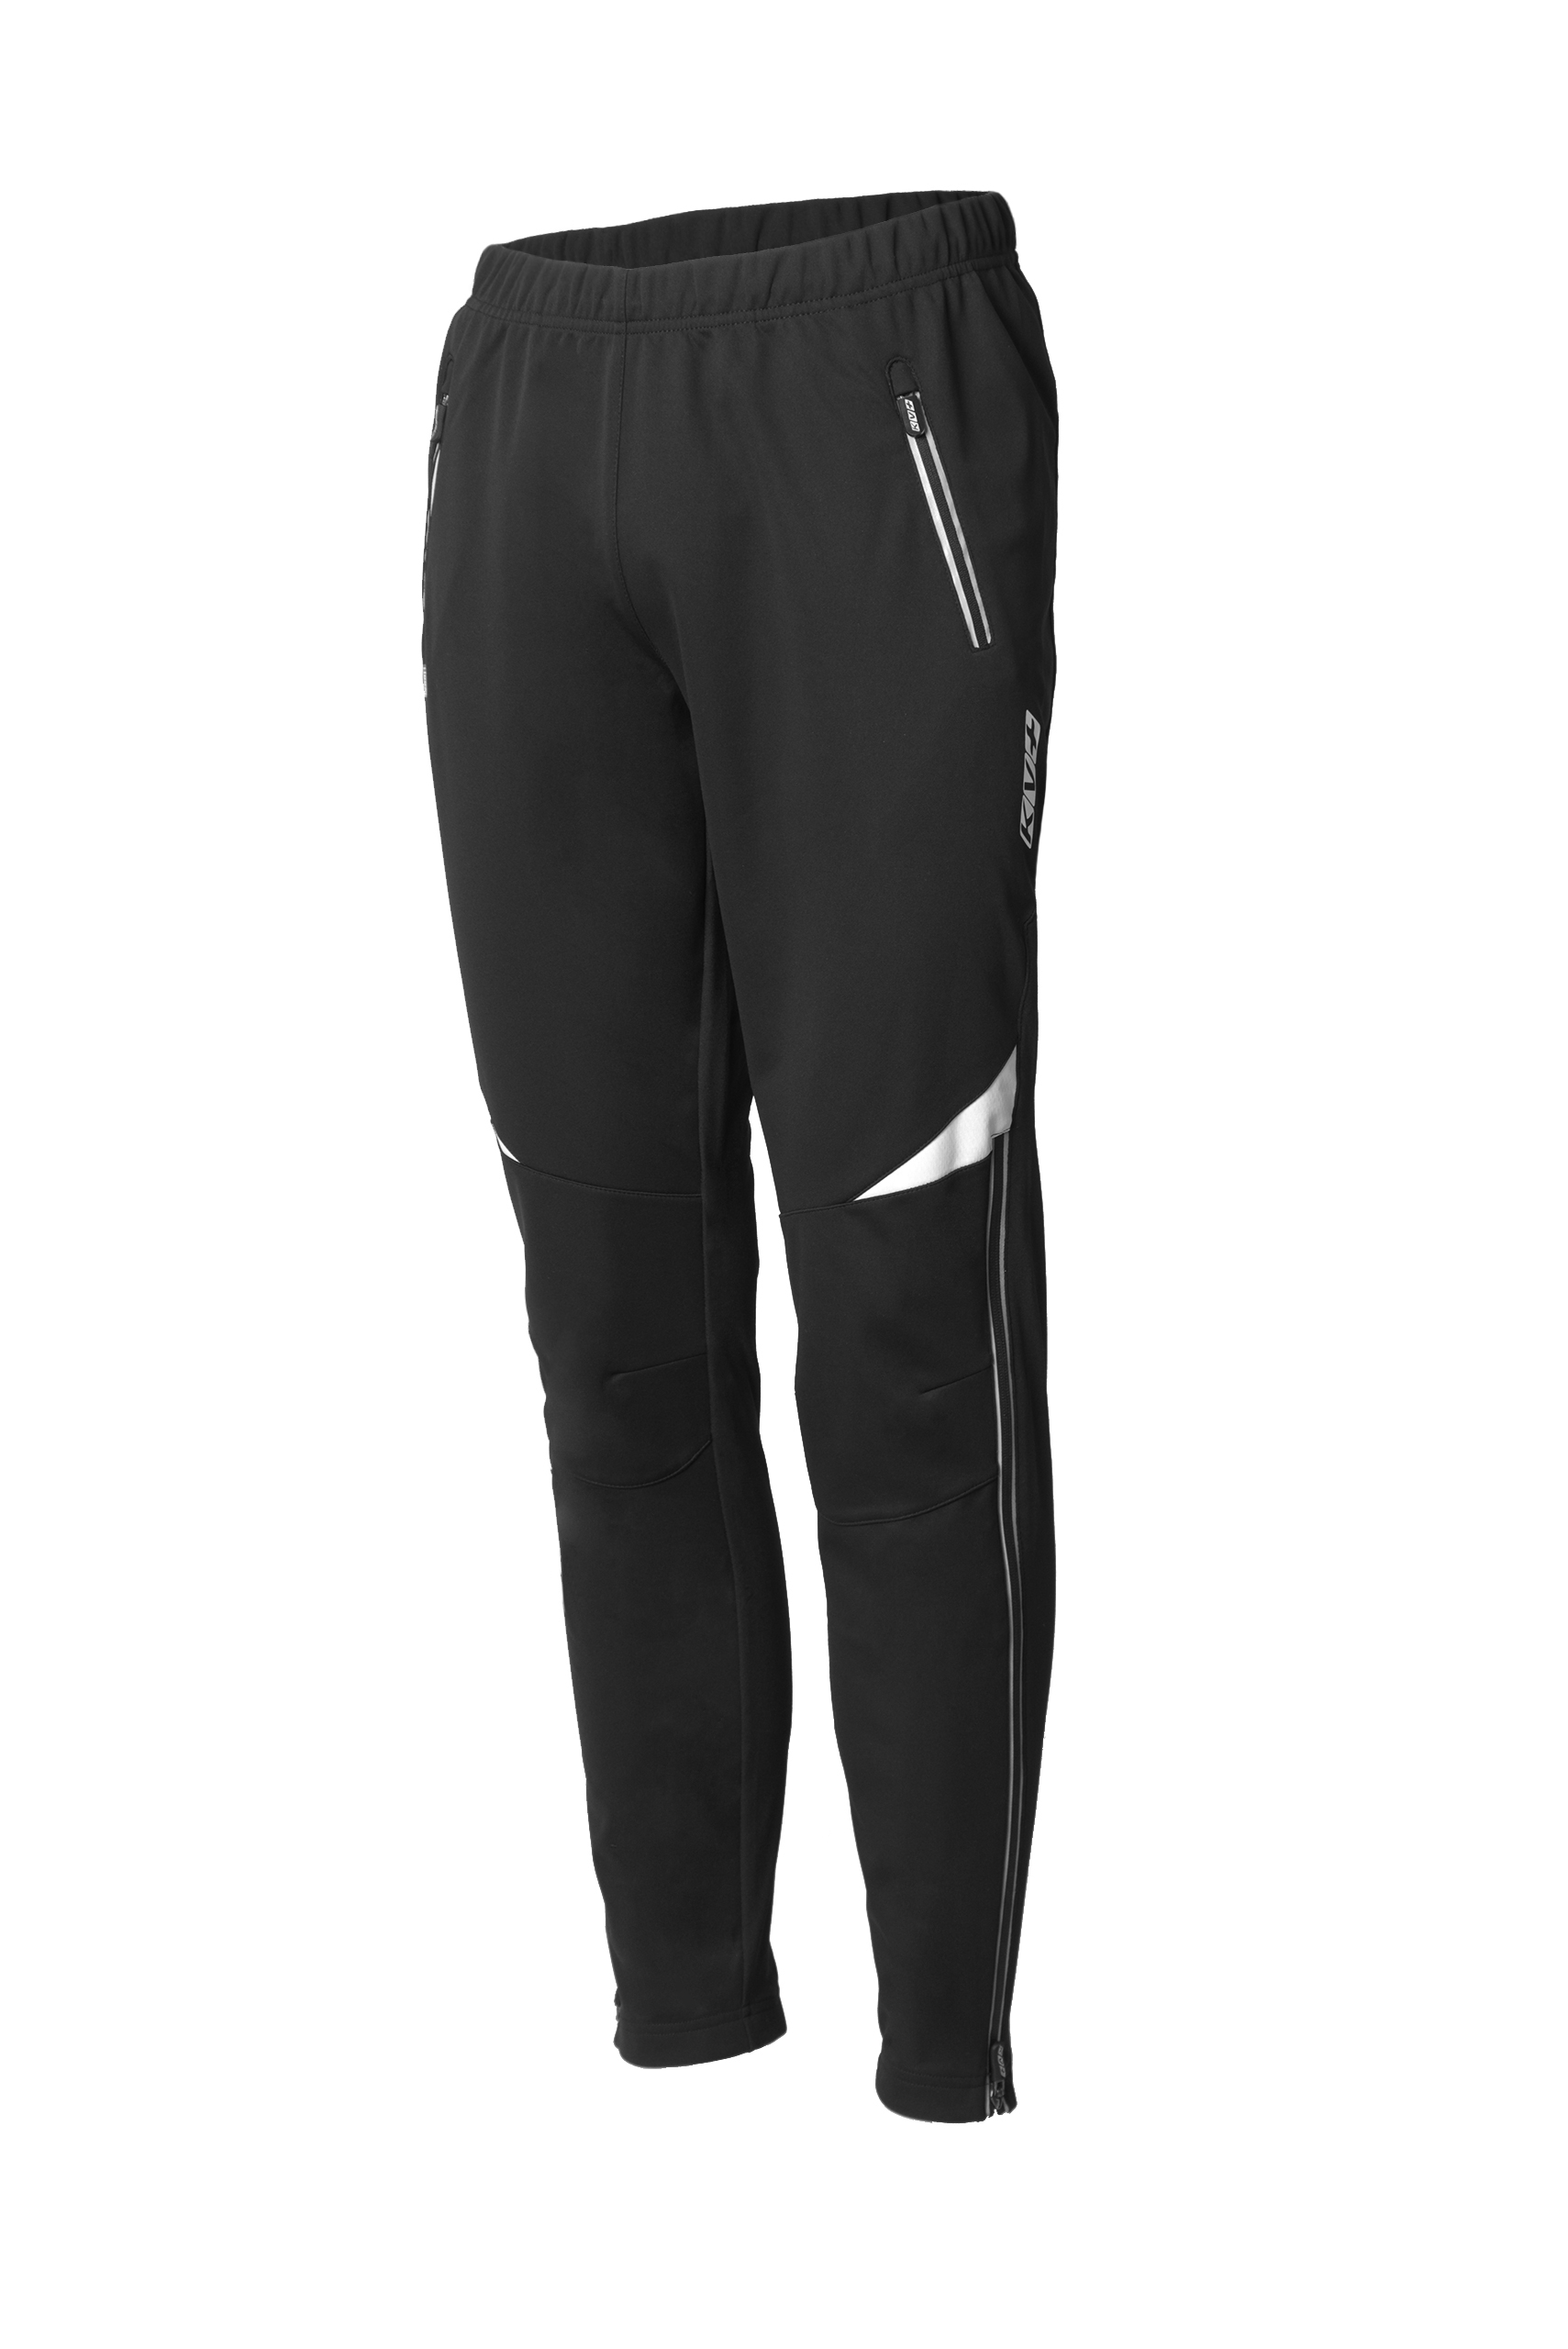 LAHTI PANTS UNISEX half side zip